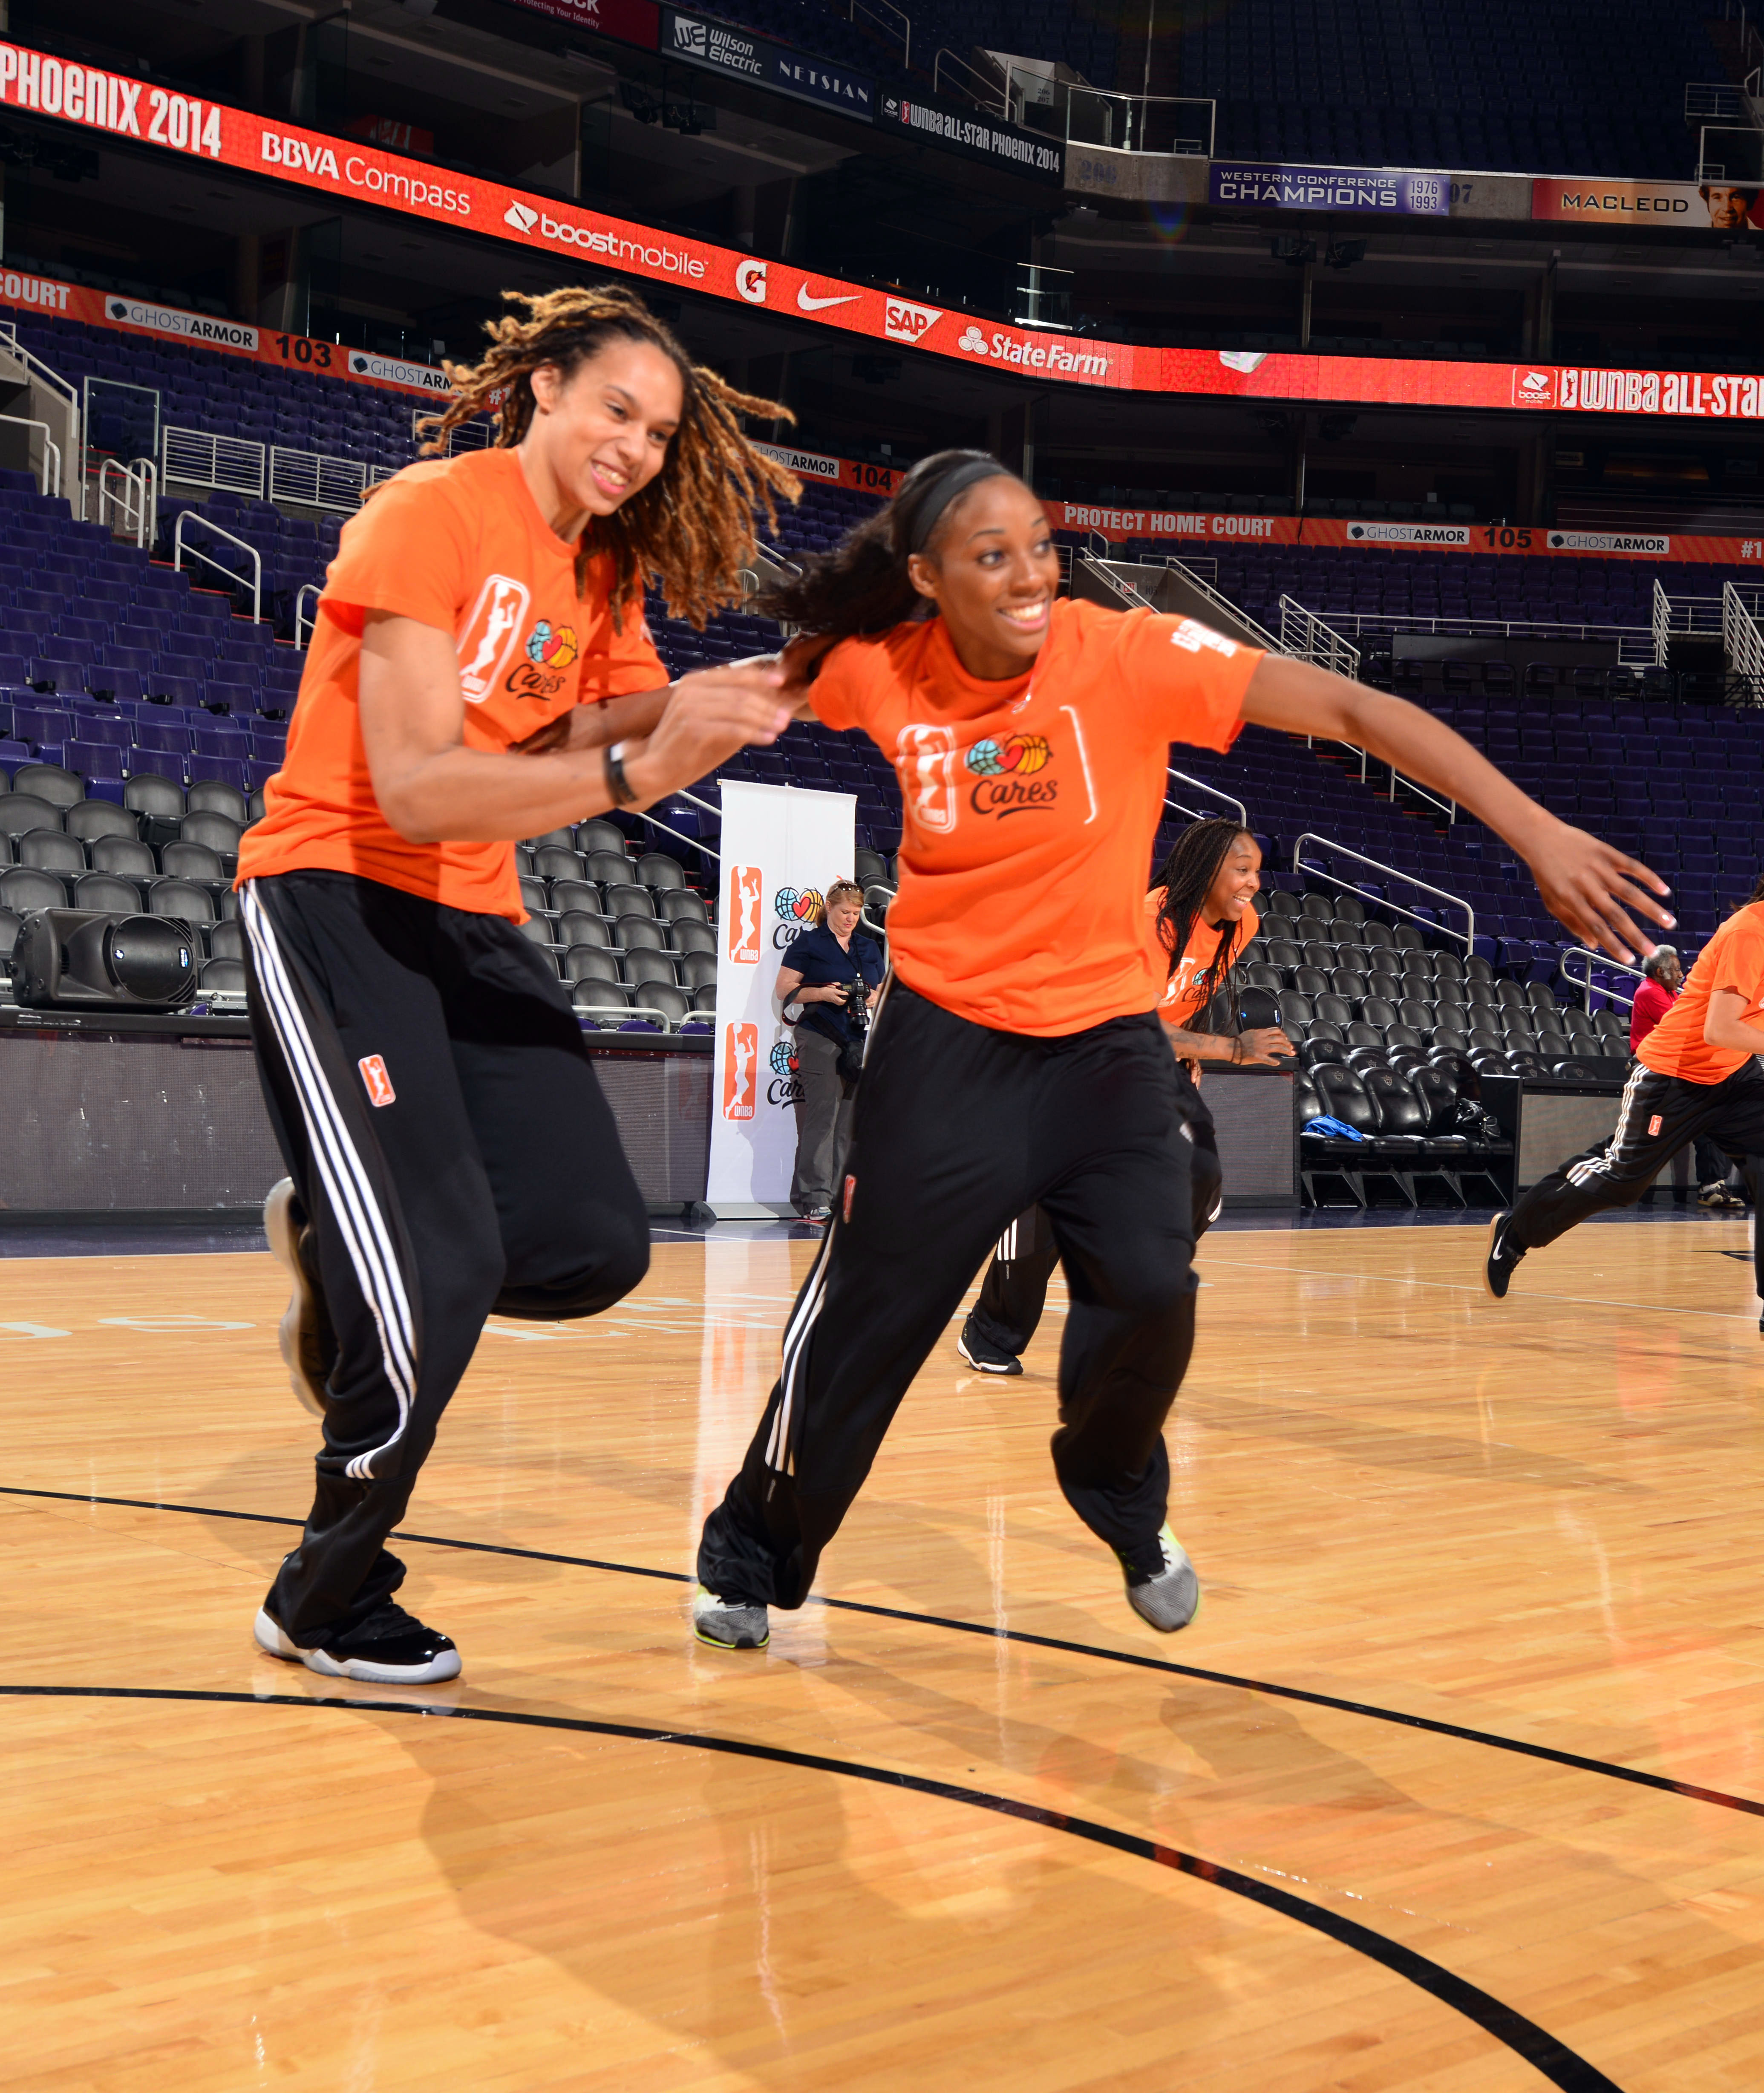 PHOENIX, AZ - JULY 18: Brittney Griner #42 of the Phoenix Mercury and Glory Johnson #25 of the Tulsa Shock run during a WNBA All-Star Cares event on July 18, 2014 at US Airways Center in Phoenix, Arizona. (Photo by Barry Gossage/NBAE via Getty Images)